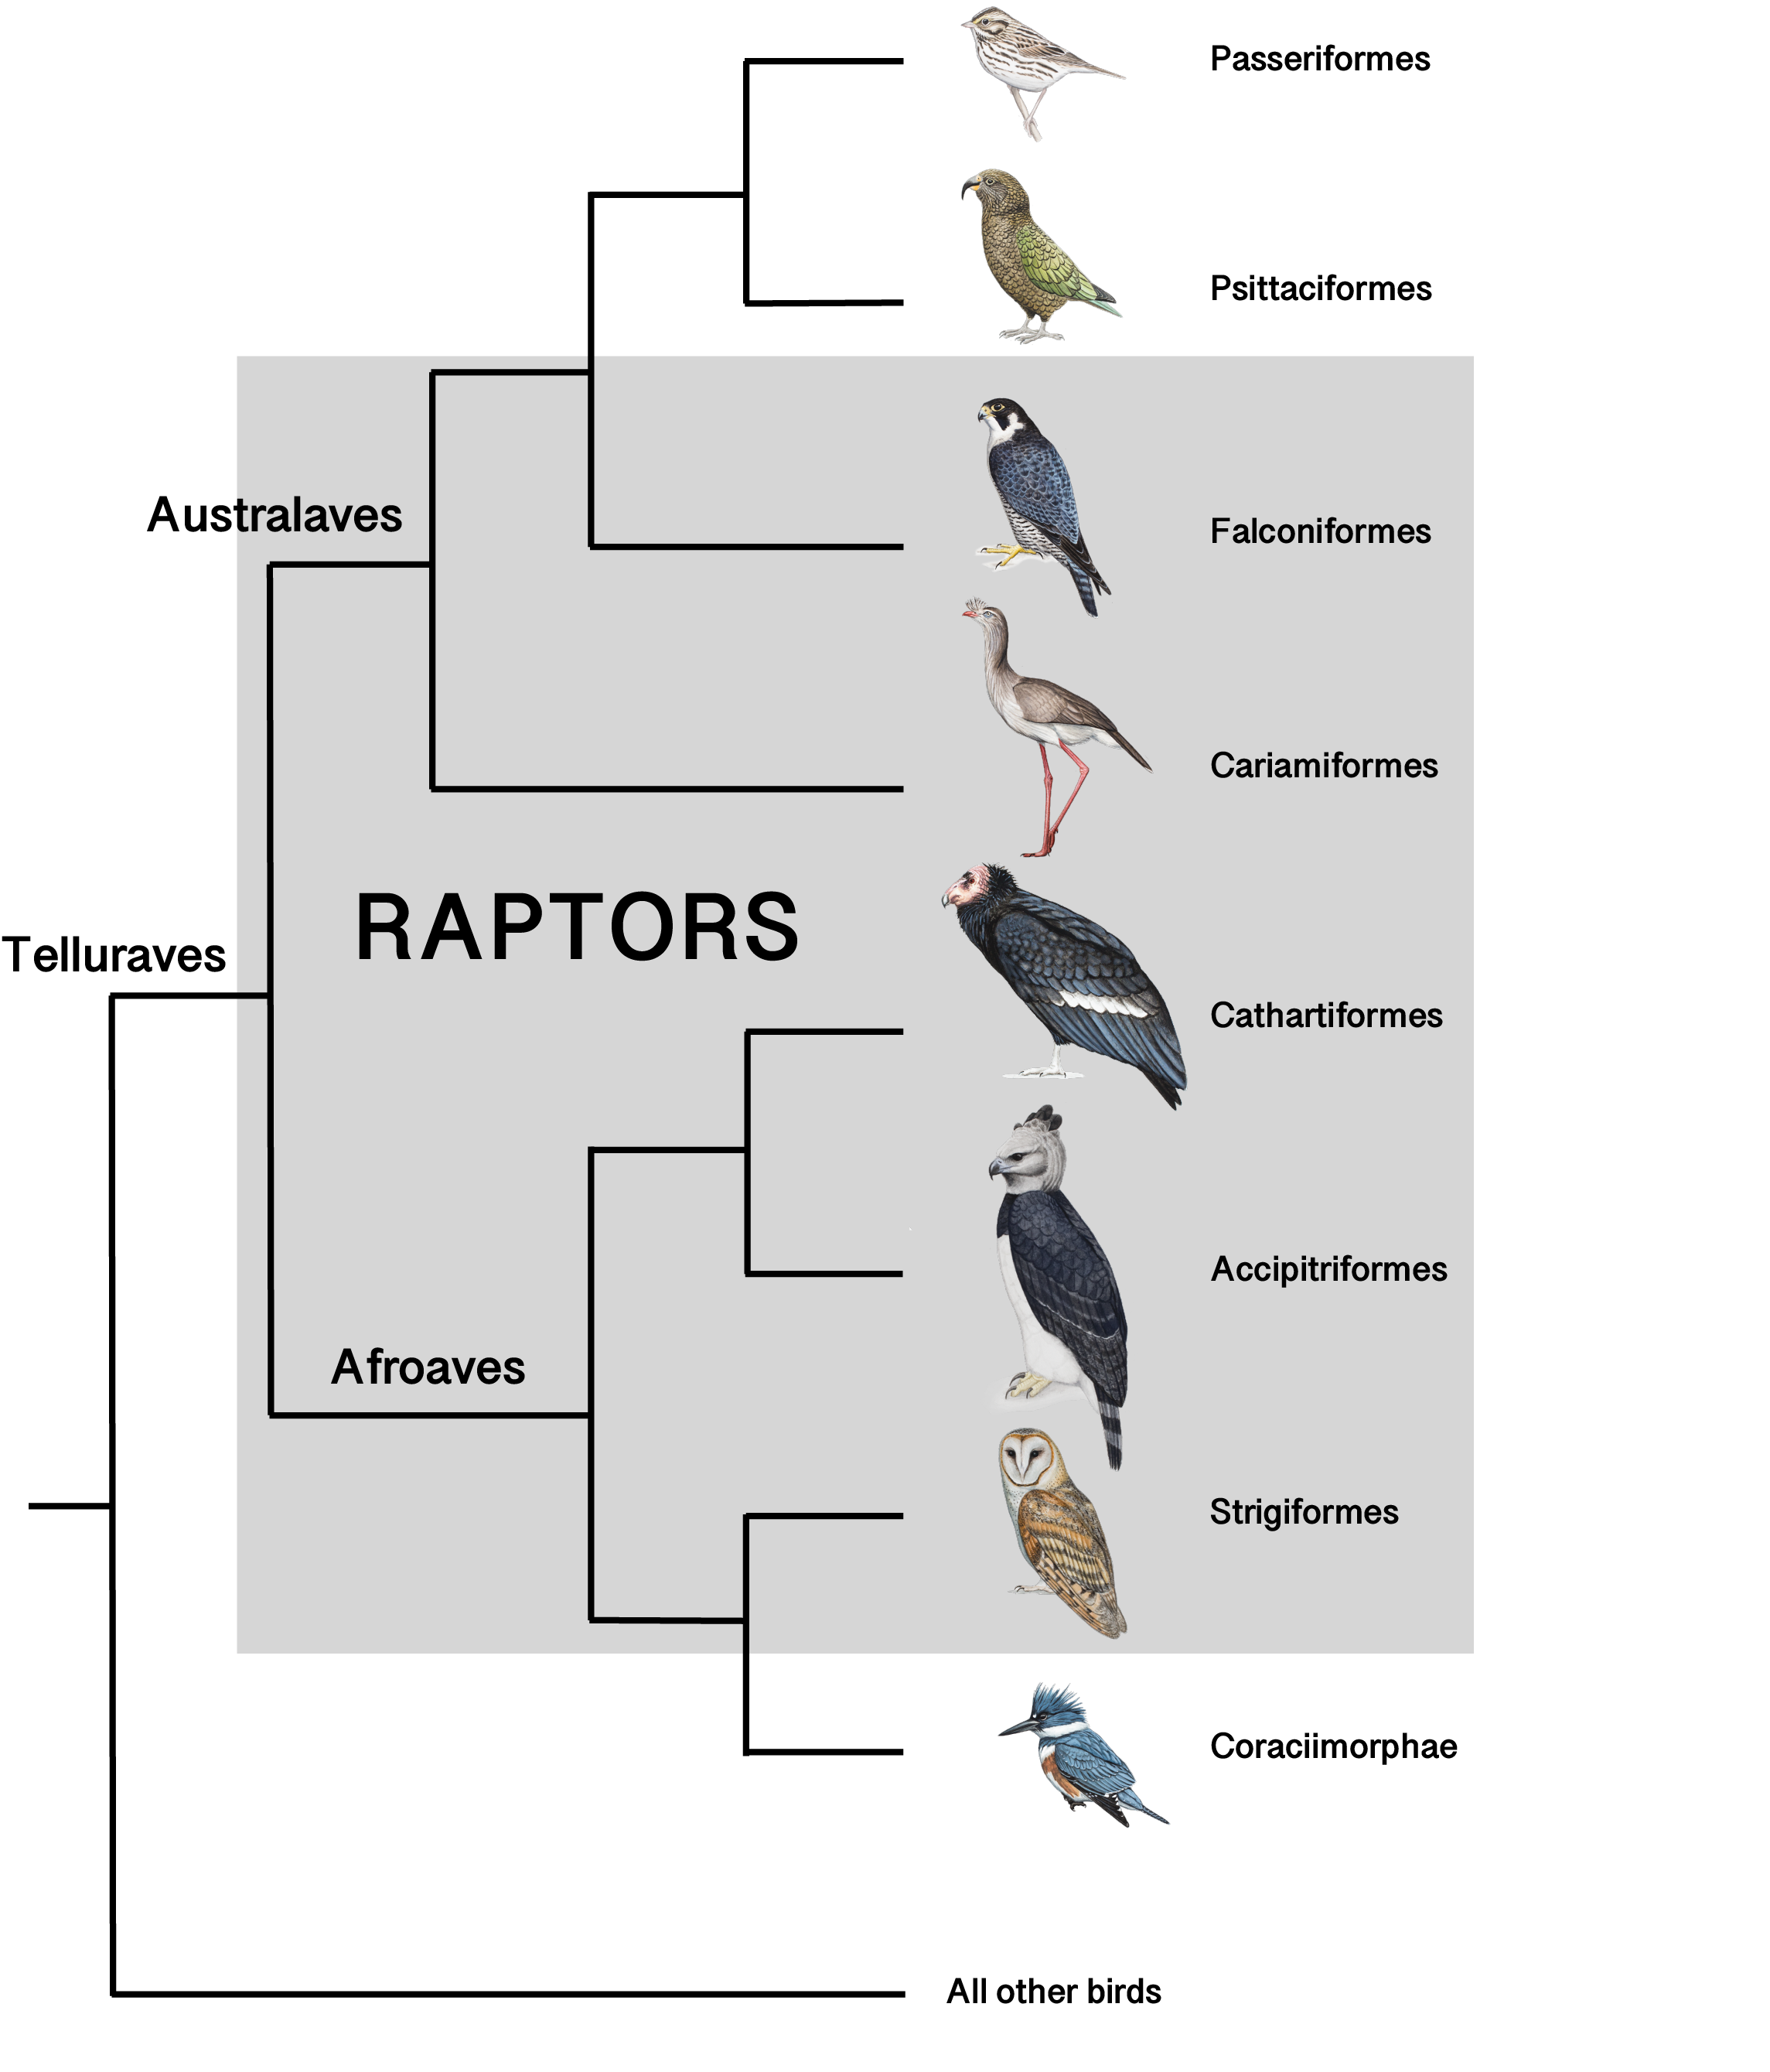 A Cladogram shows which groups of birds of prey evolved from which ancestors.